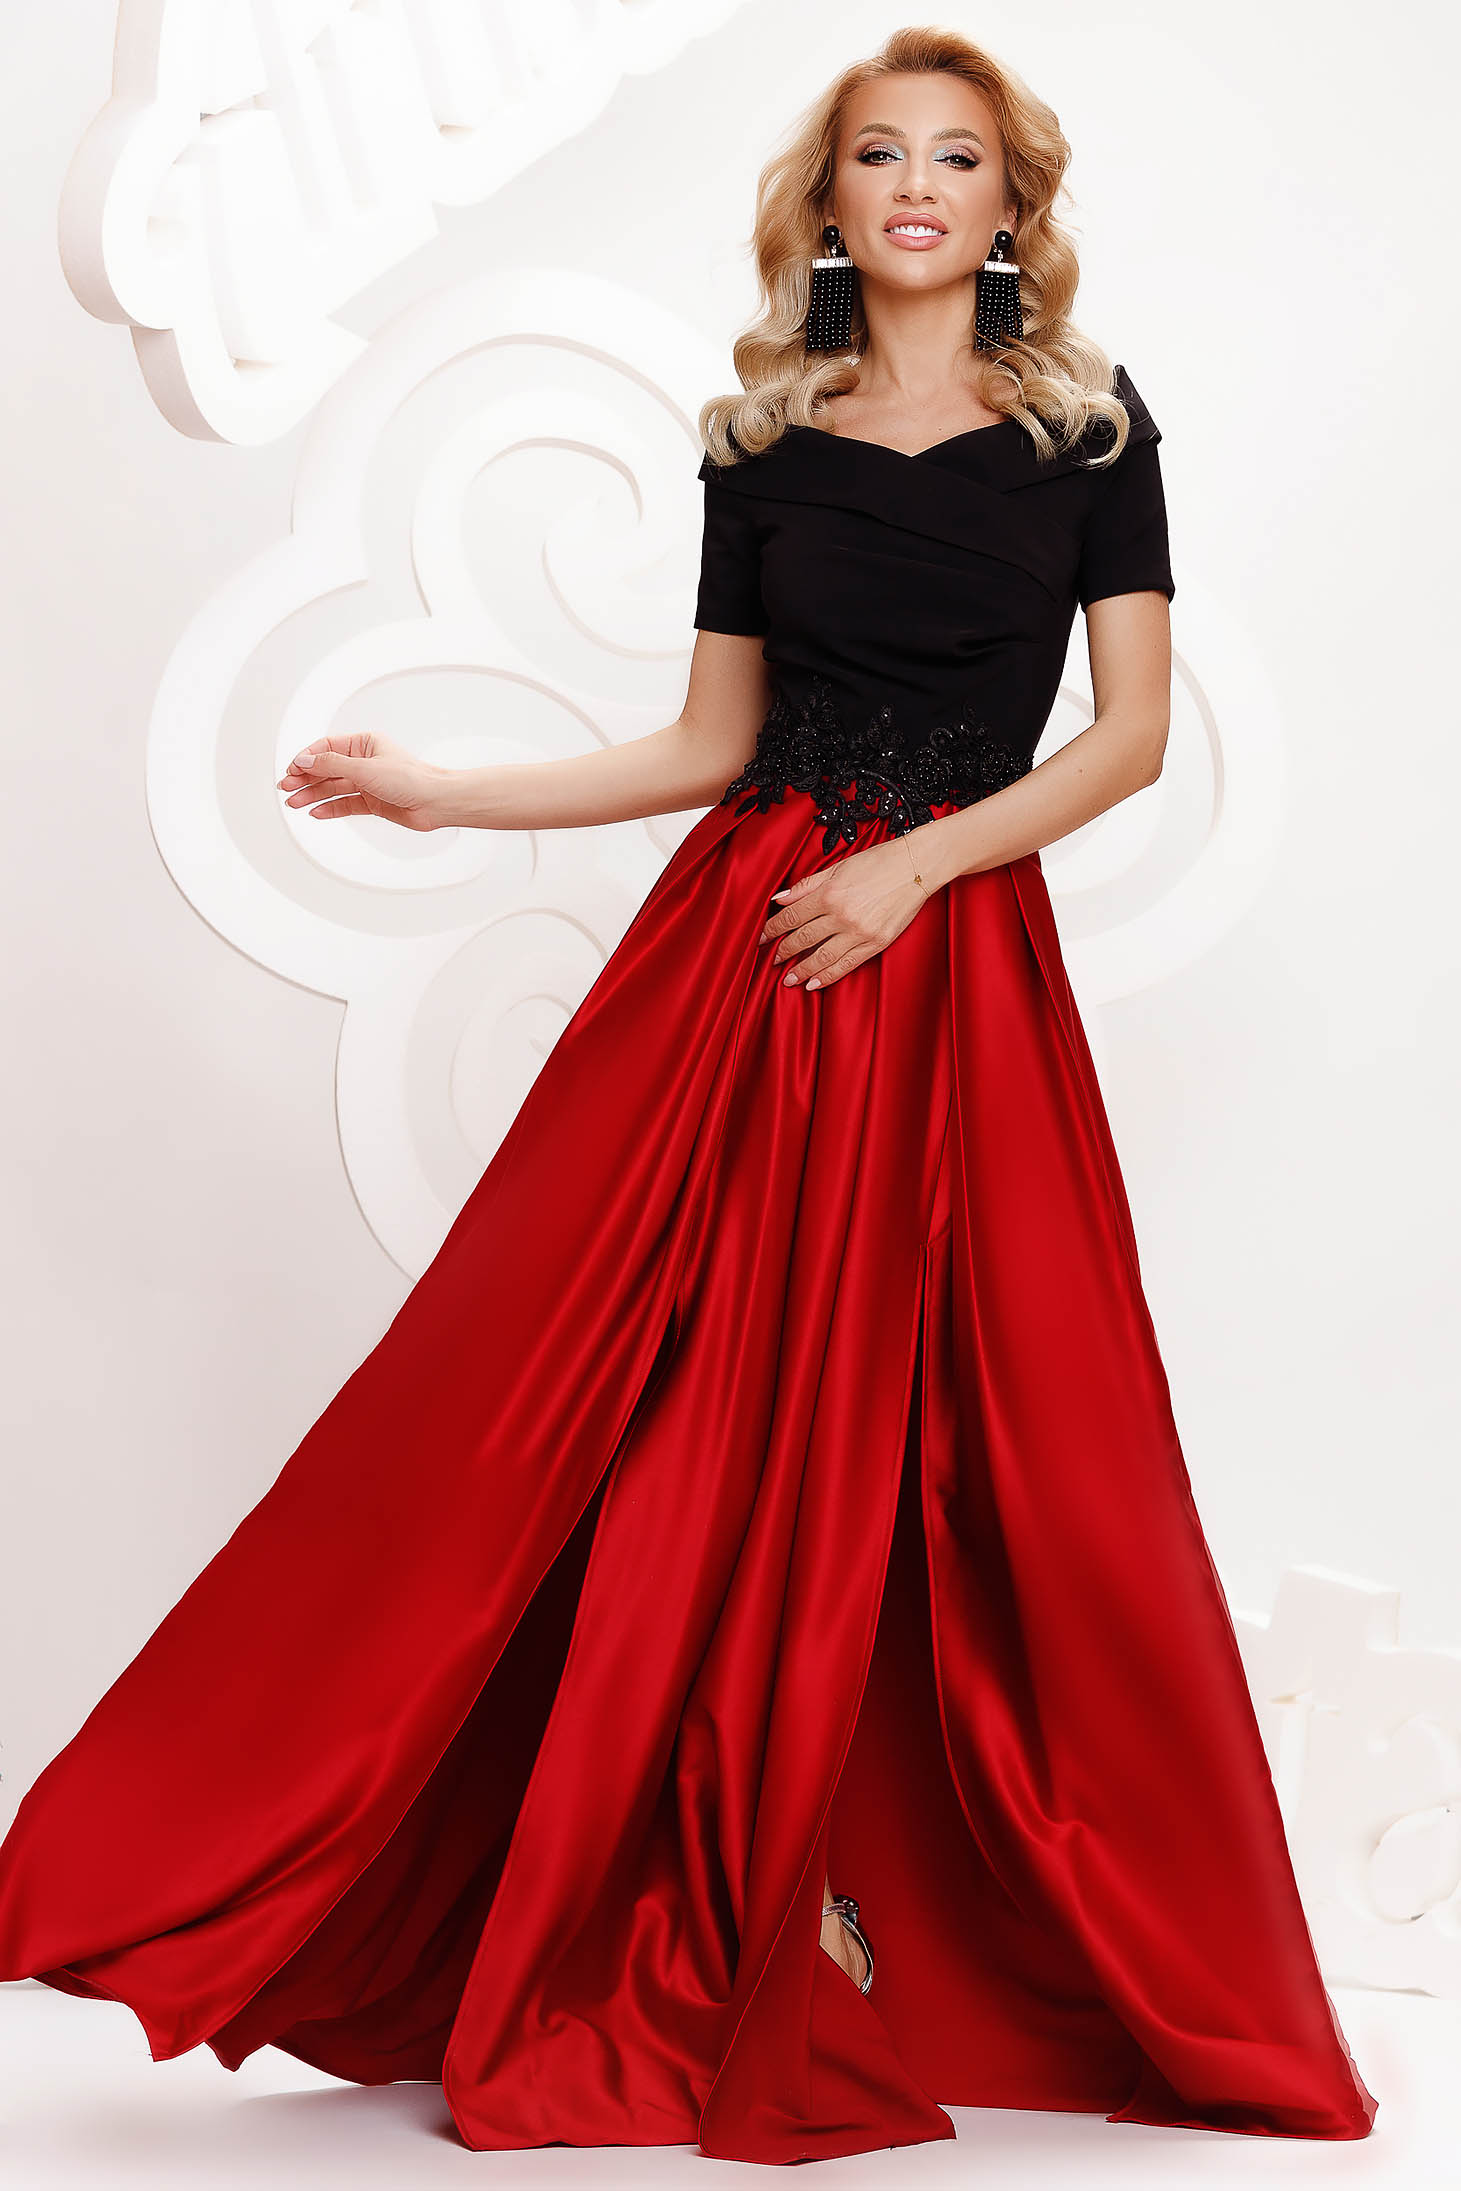 Red dress from satin cloche occasional slit on the shoulders with embellished accessories